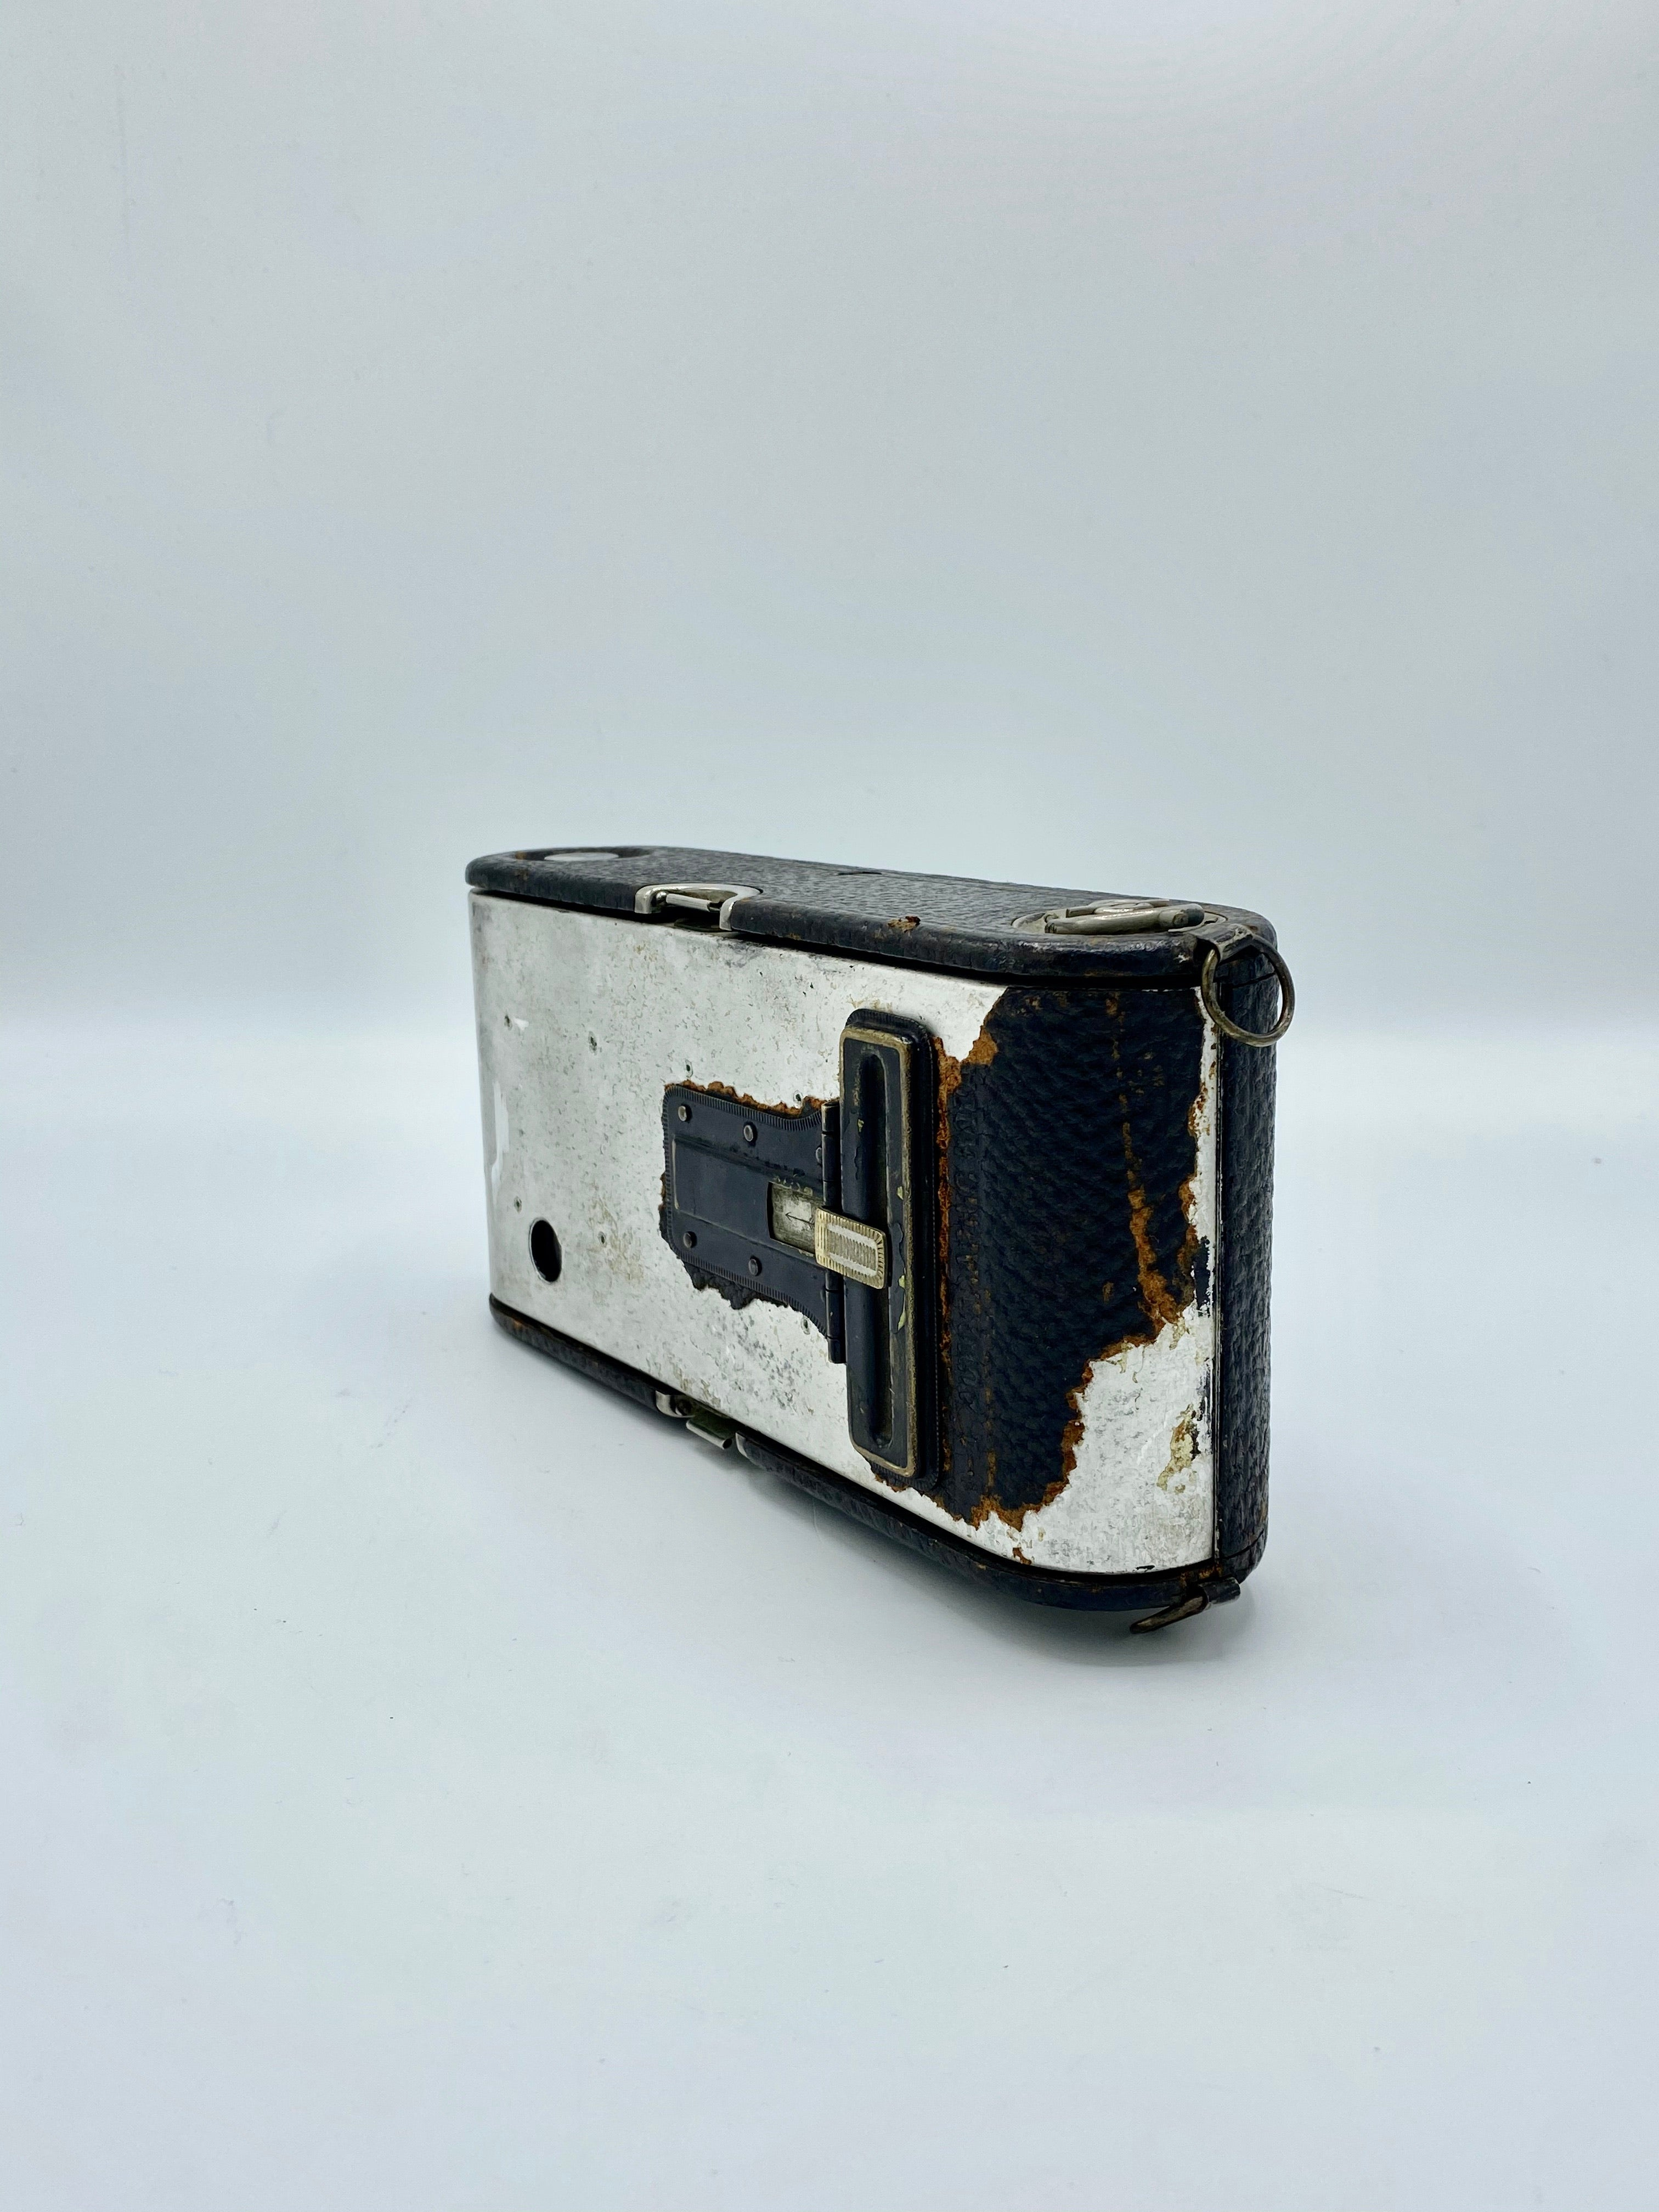 Kodak 1913 Foldable Land Camera